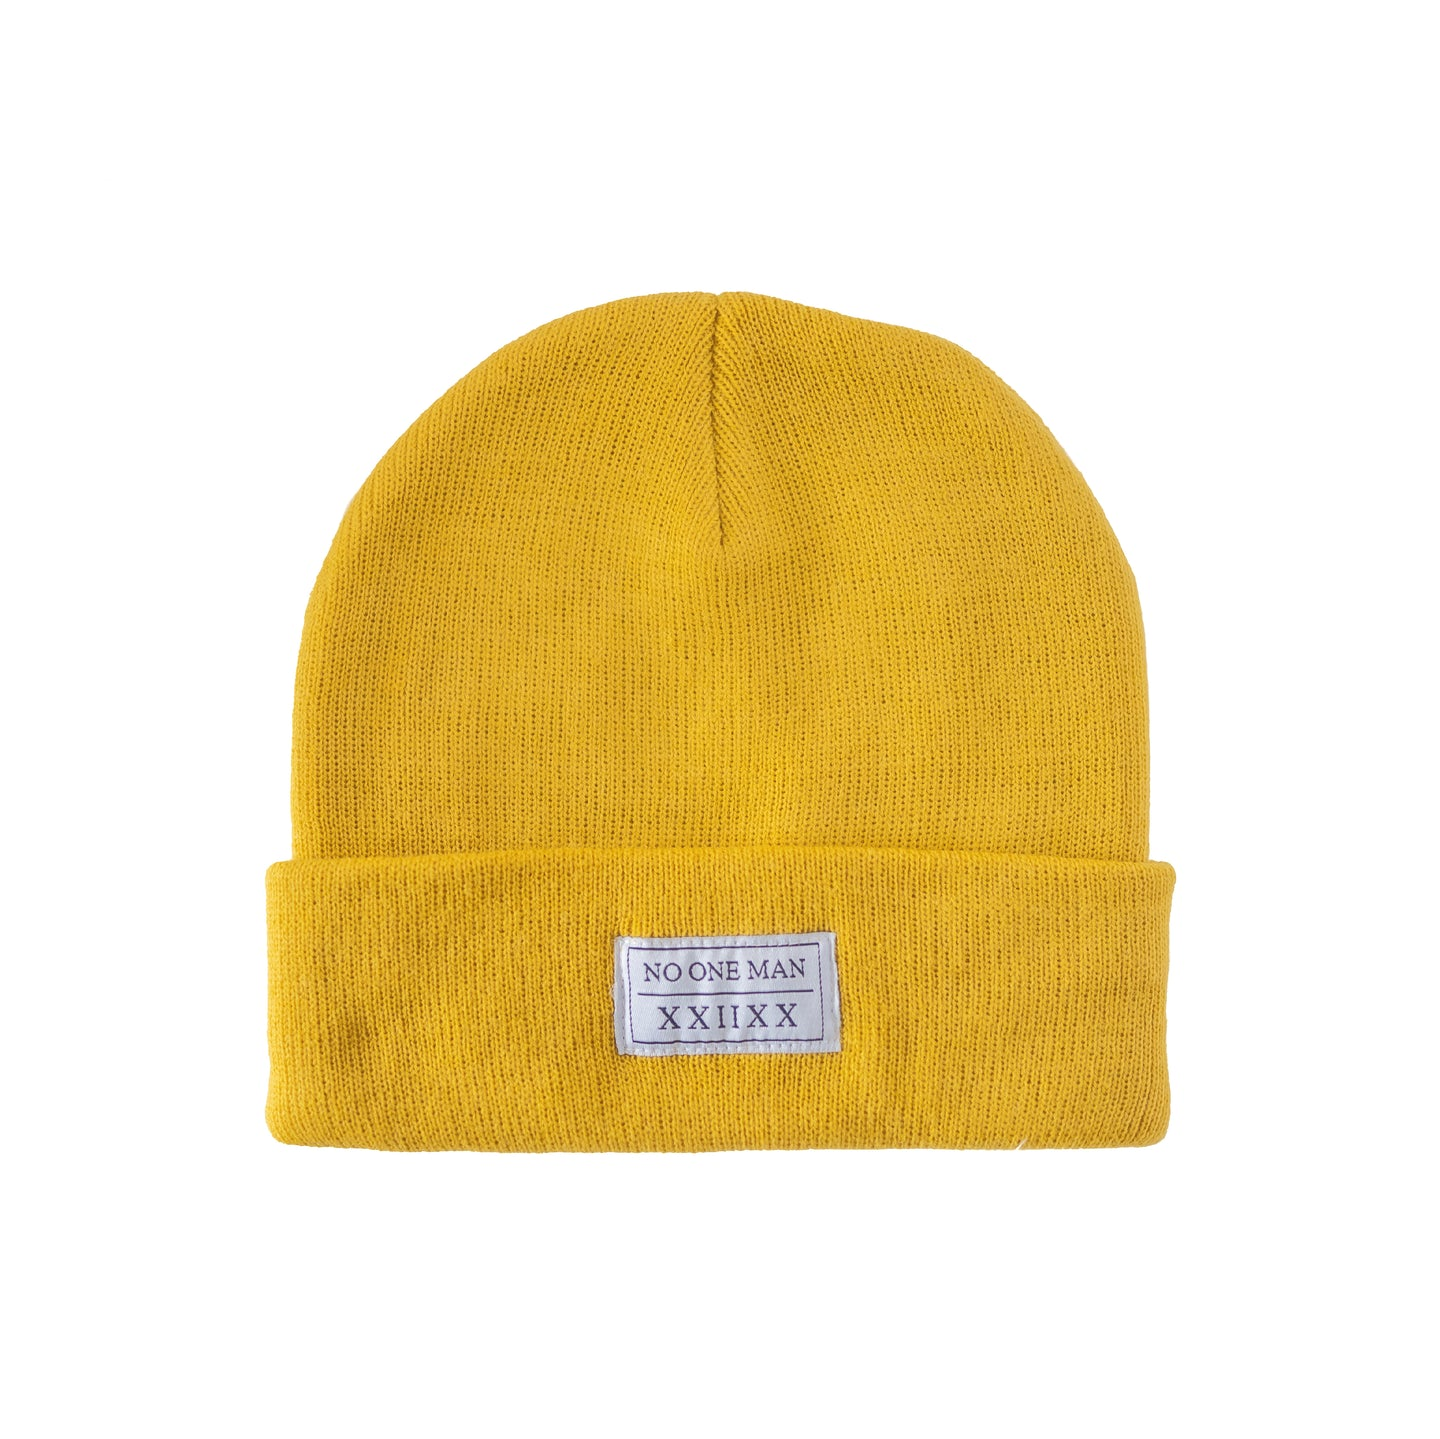 TALL YELLOW BEANIE